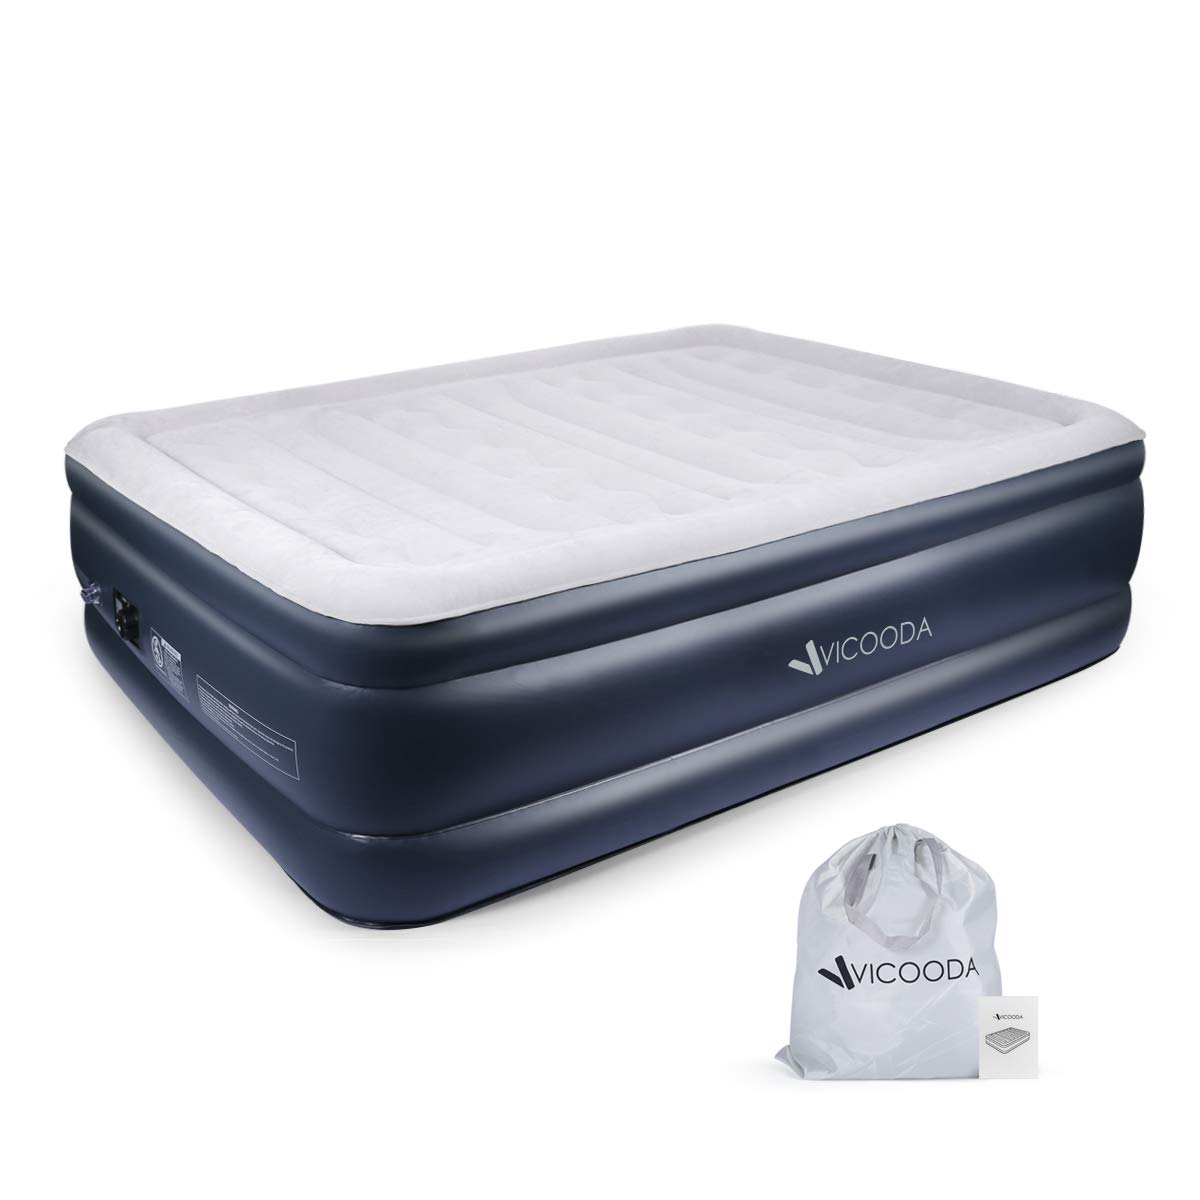 VICOODA Air Mattress Queen Size Blow Up Raised Guest Durable Firm Bed Inflatable Airbed with Built-in Electric Pump, 22 inch in Height, 650 lb in Capacity, PVC Materials, Upgraded & Easy Setup